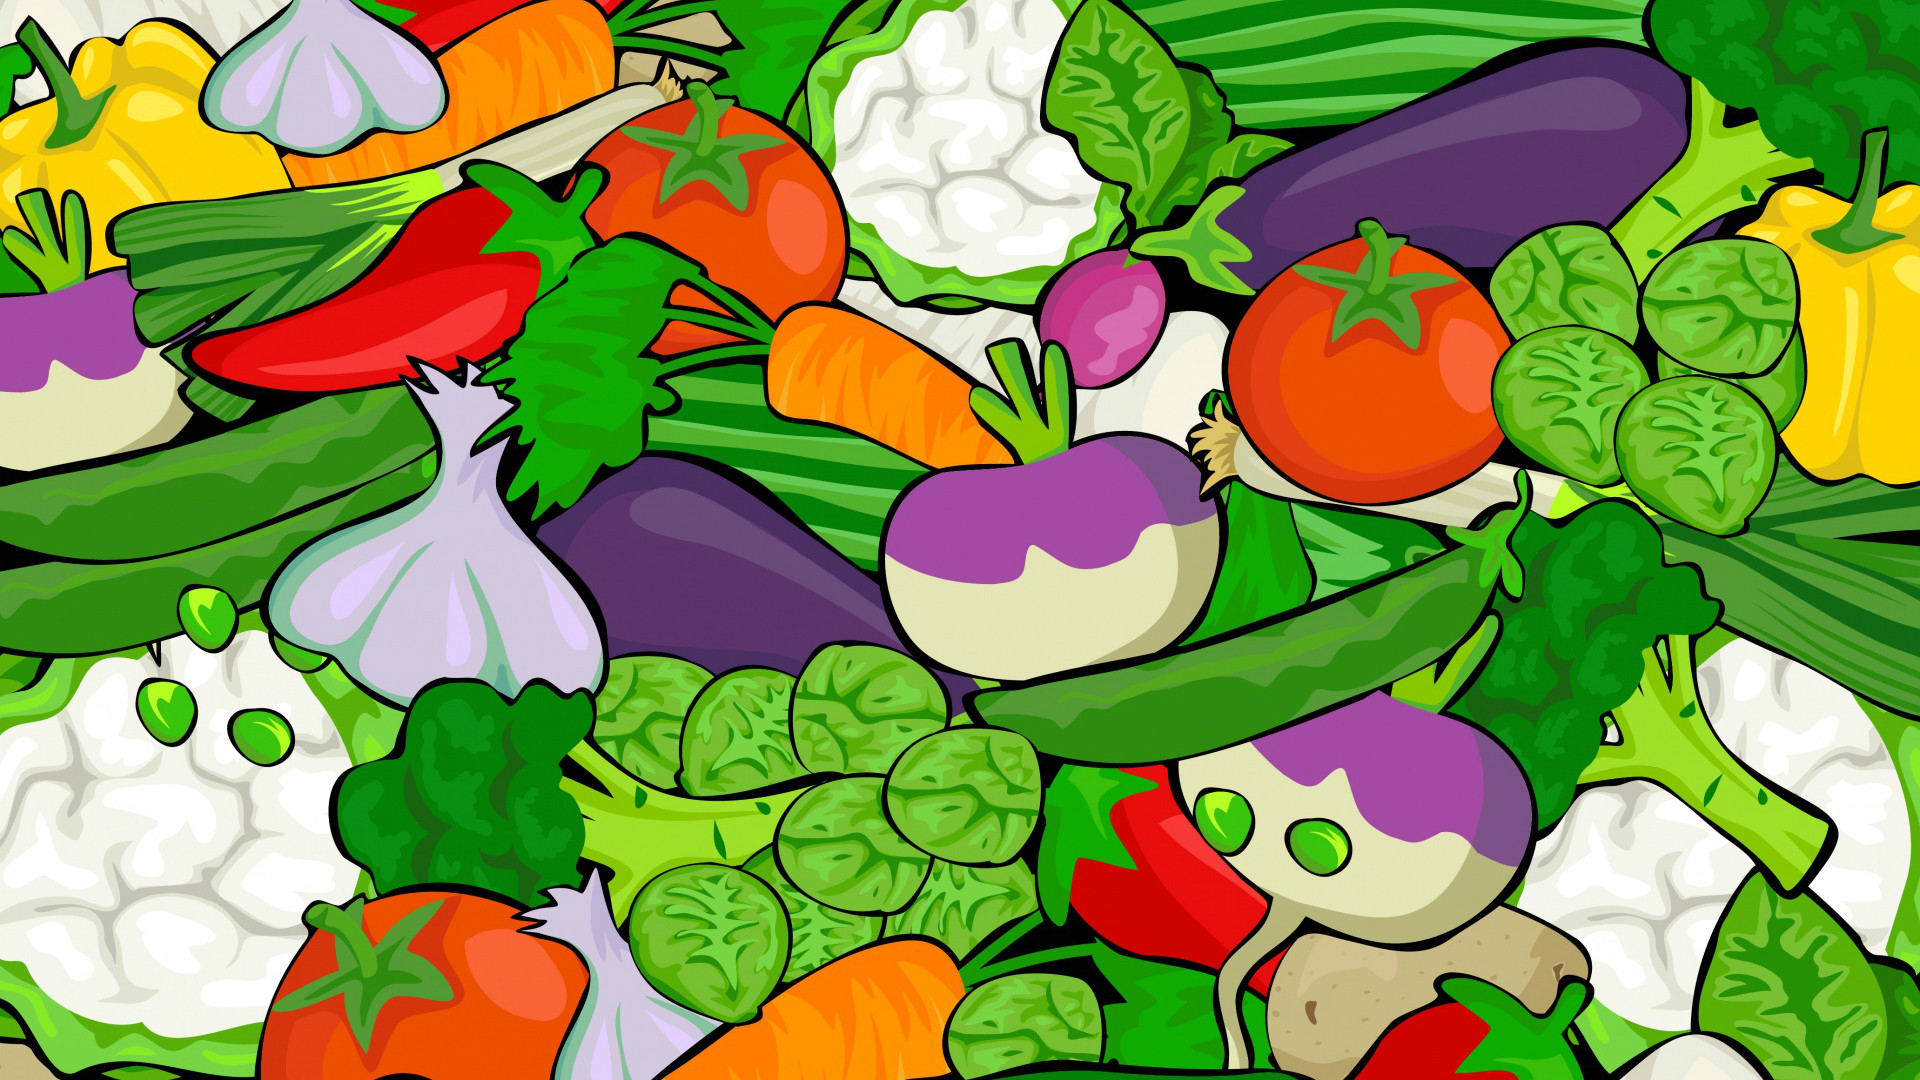 A artful selection of vegetables.